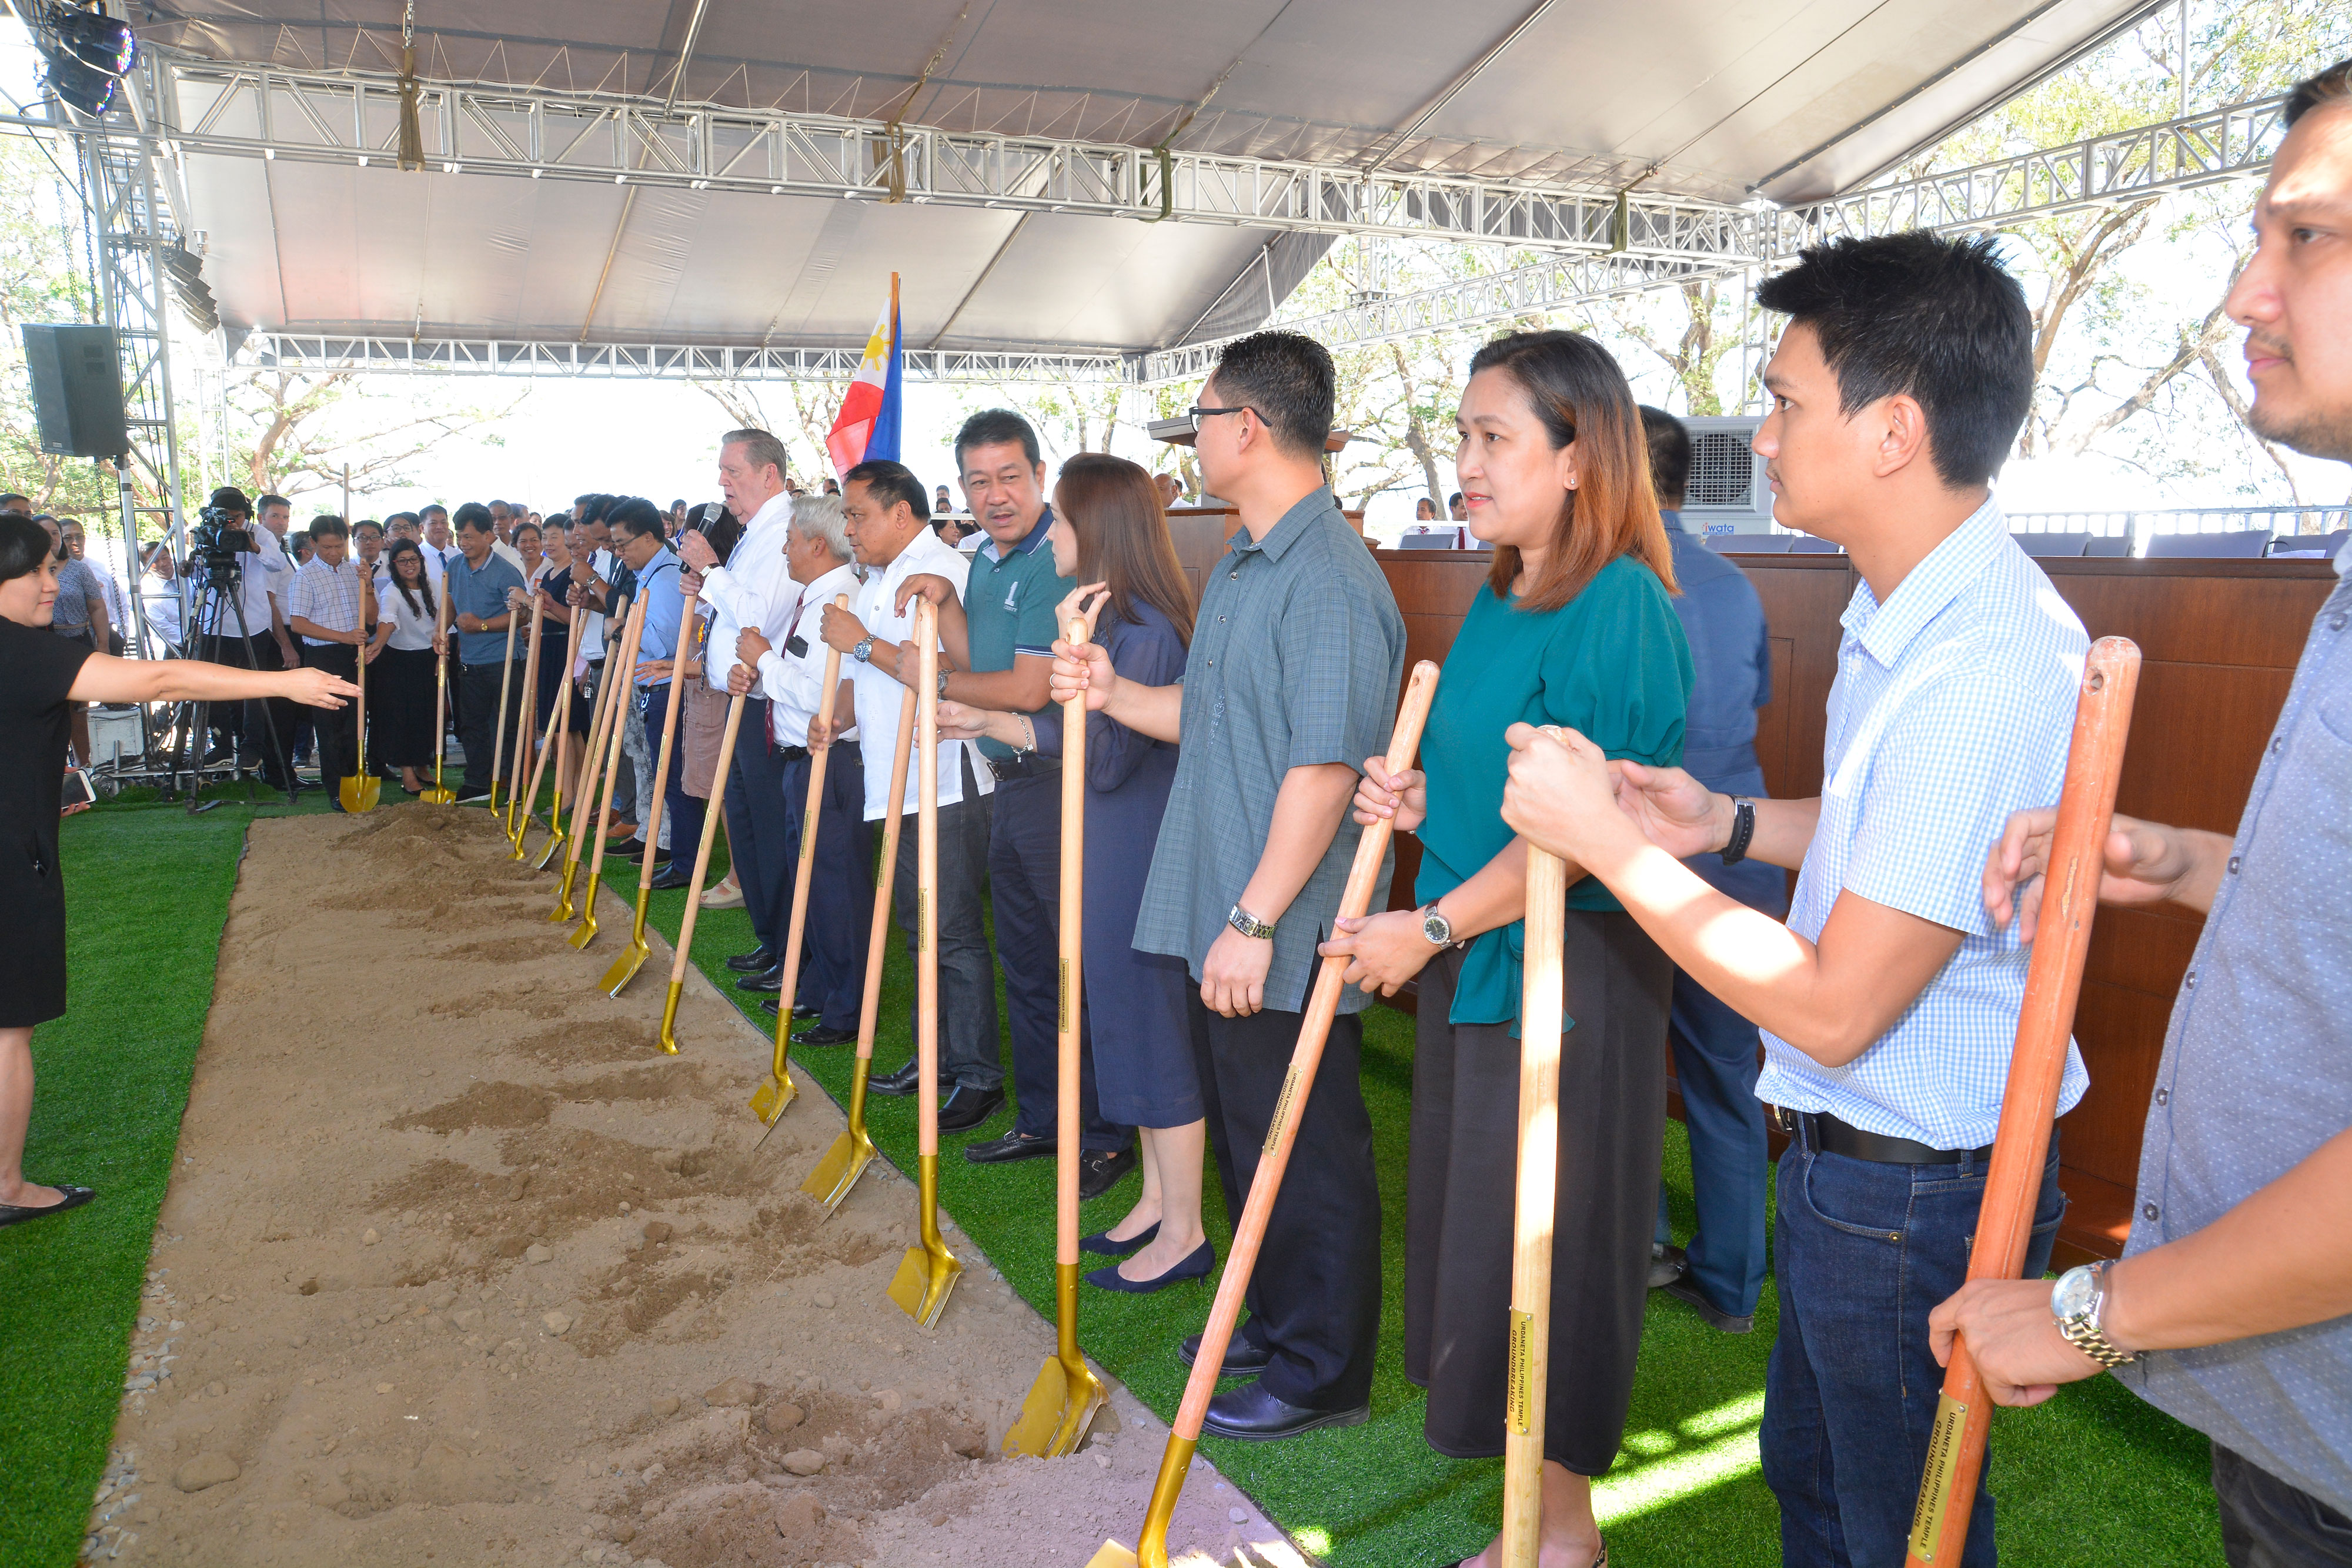 Holding a shovel in the center of the line, Elder Jeffrey R. Holland of the Quorum of the Twelve Apostles addresses community leaders and Church membersa in Urdaneta, Pangasinan, Philippines, on Wednesday, Jan. 16, 2019. He broke ground for the new temple, the Church's third in the Philippines.